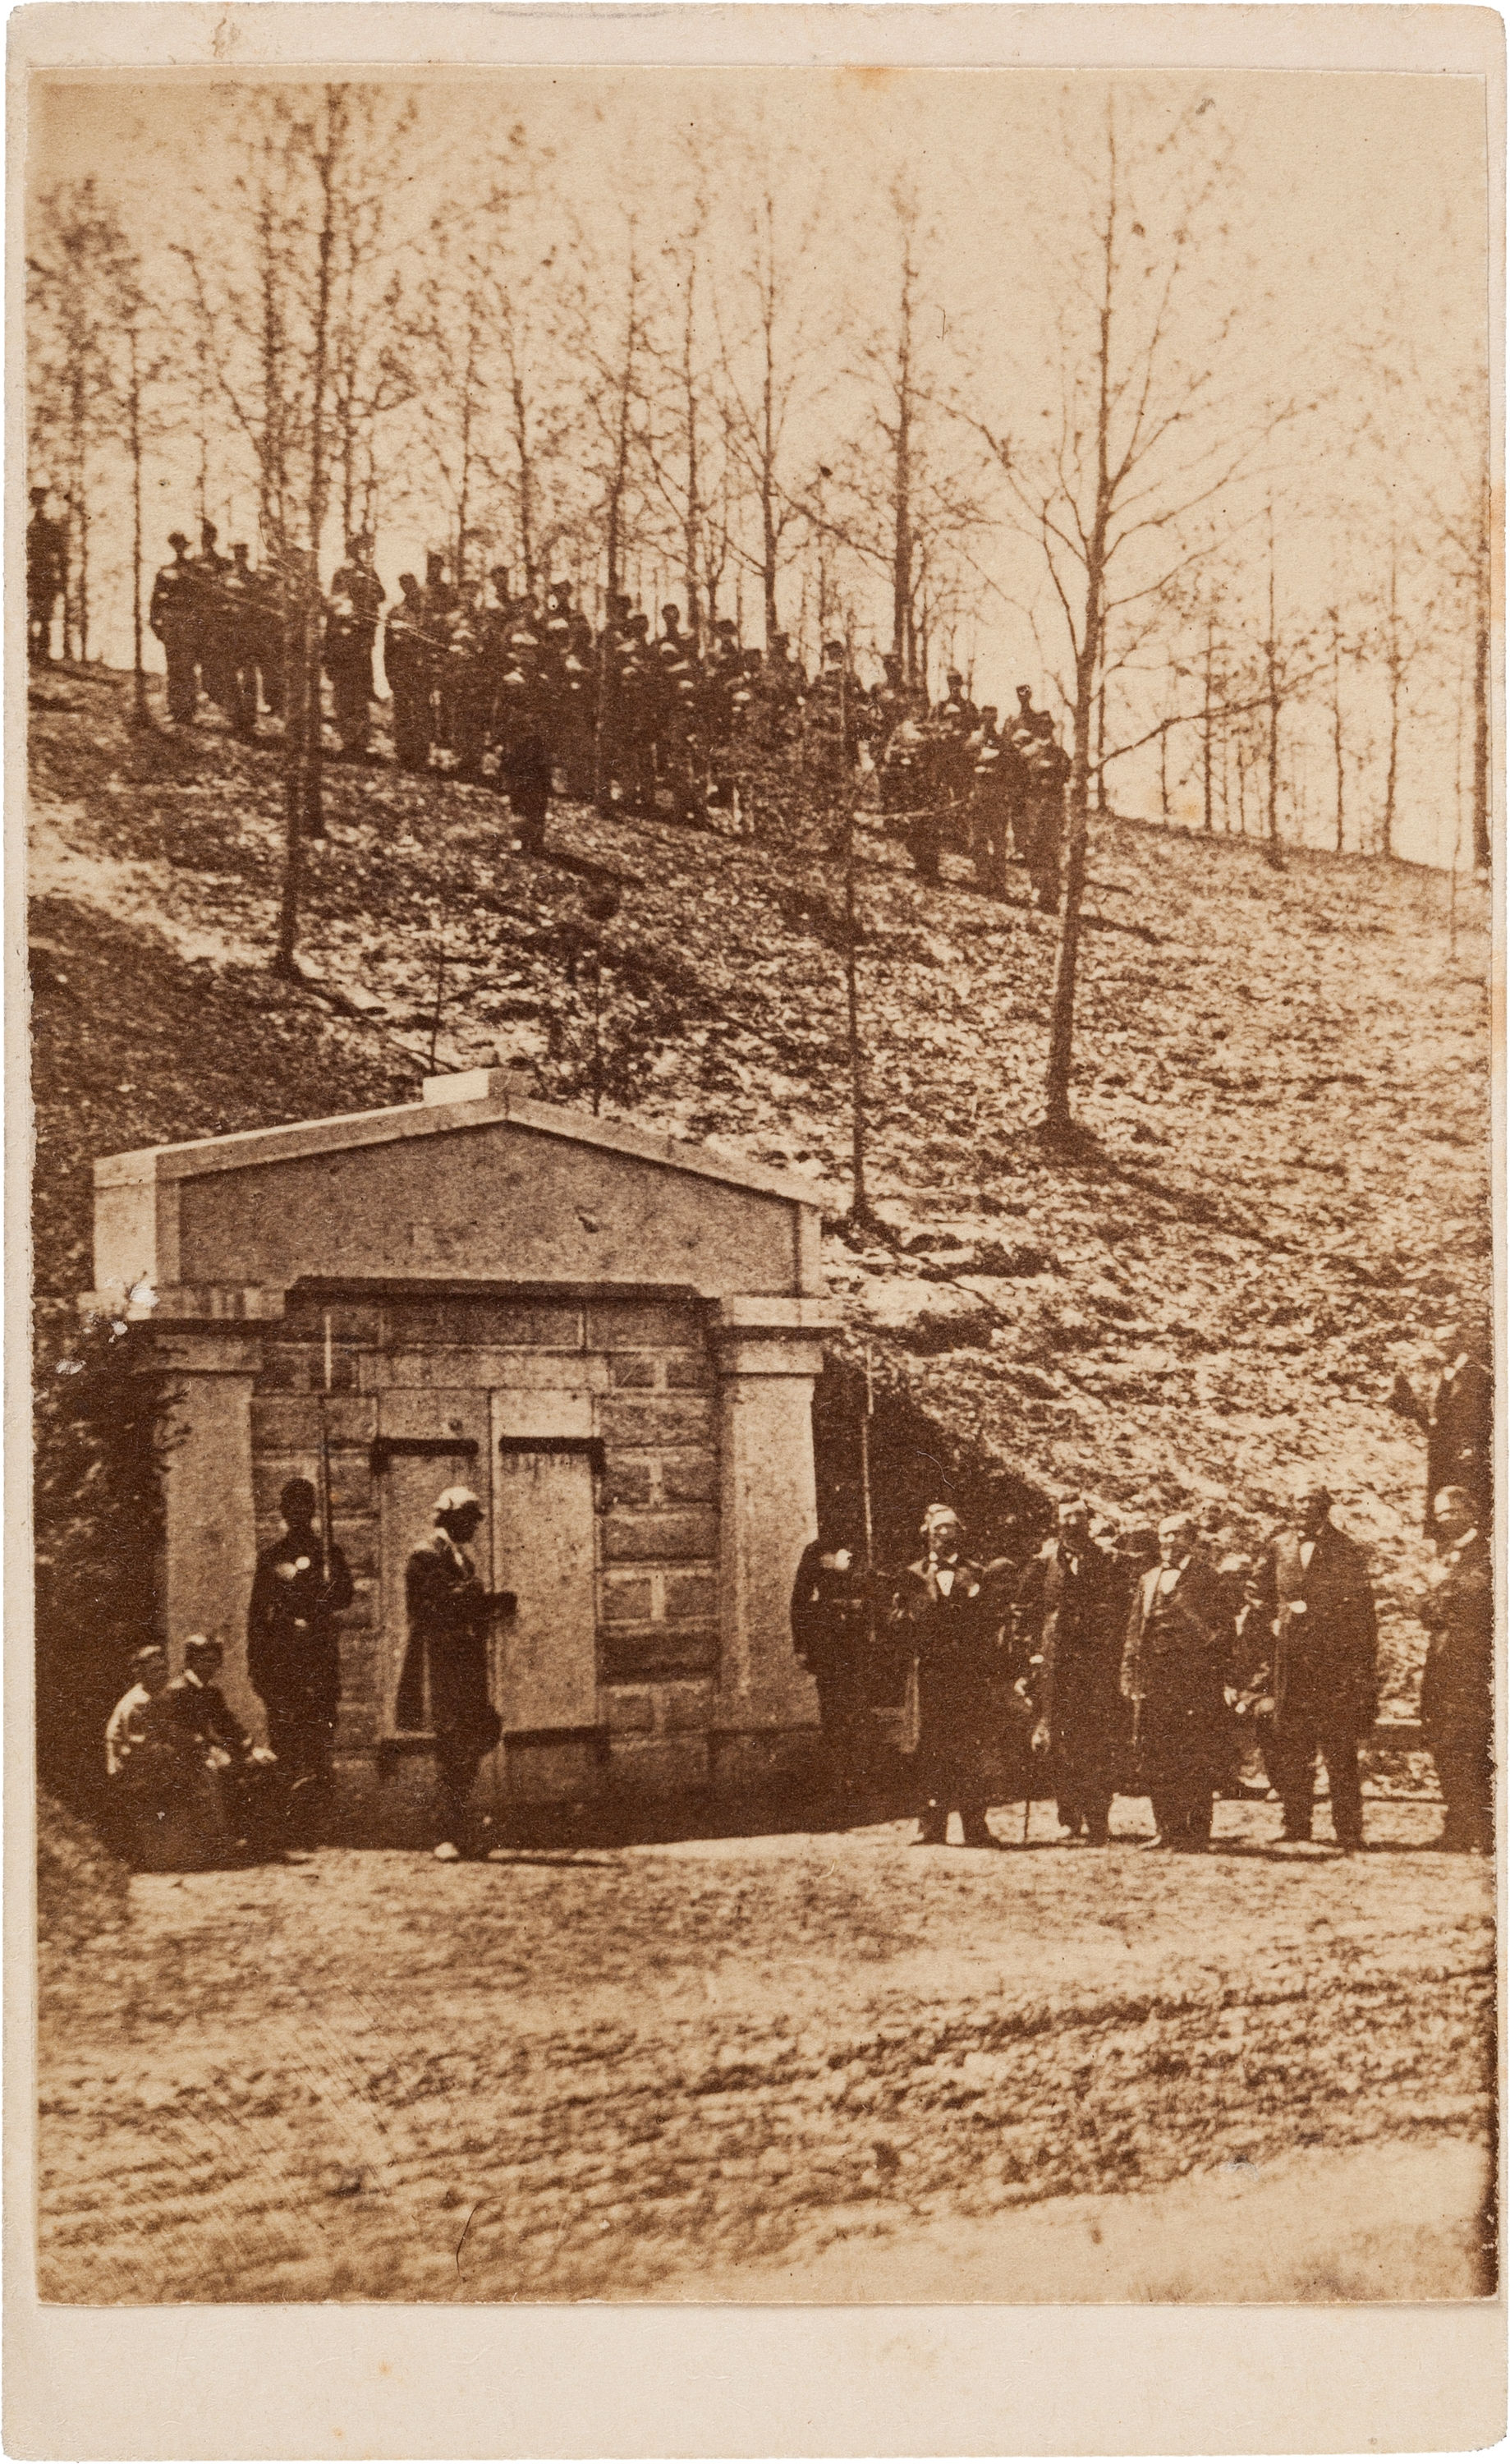 Carte-de-visite showing soldiers posted at the receiving vault at Oak Ridge Cemetery in Springfield. Five civilians, likely a committee of arrangements, stand to the right.